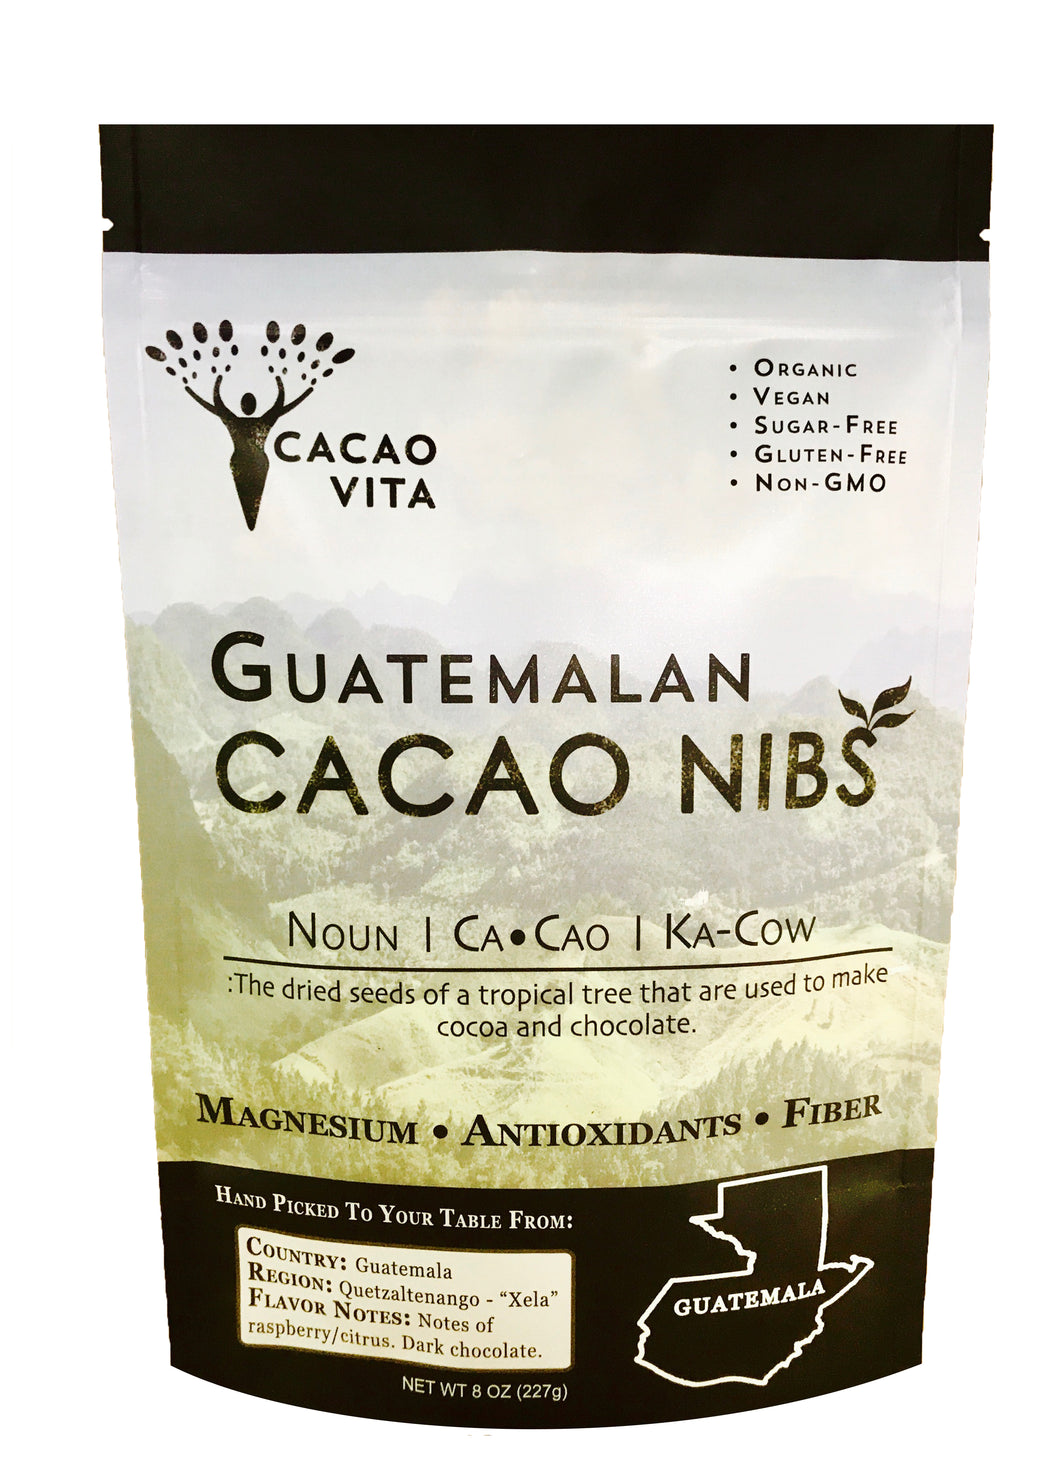 Single Origin Cacao Nibs from Guatemala